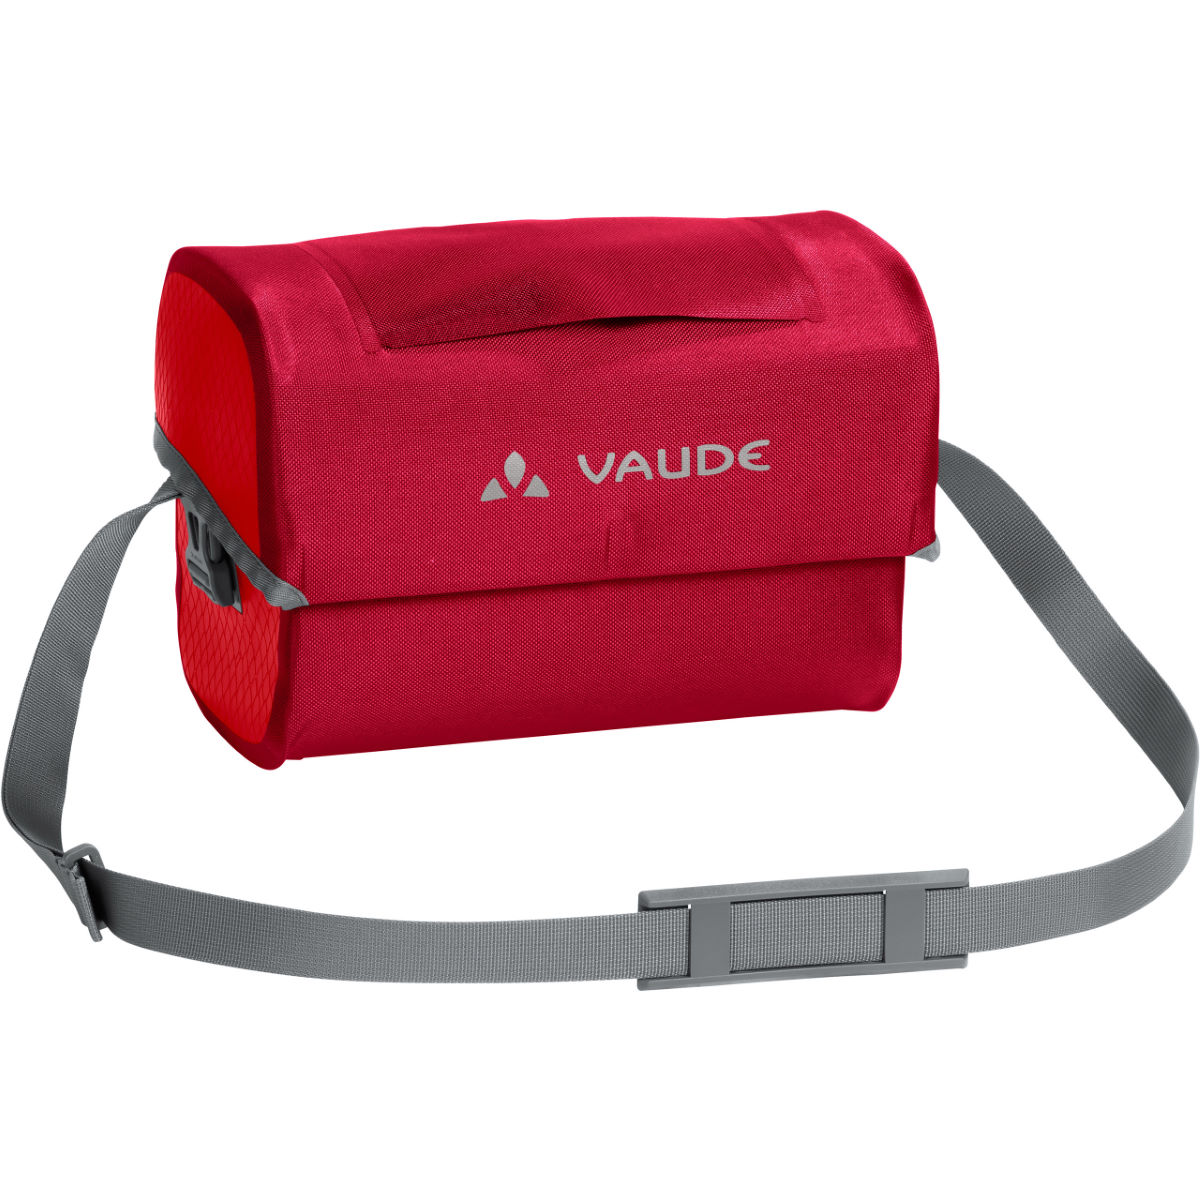 Sacoche Vaude Aqua Box - One Size Indian Red Sacoches de cintre